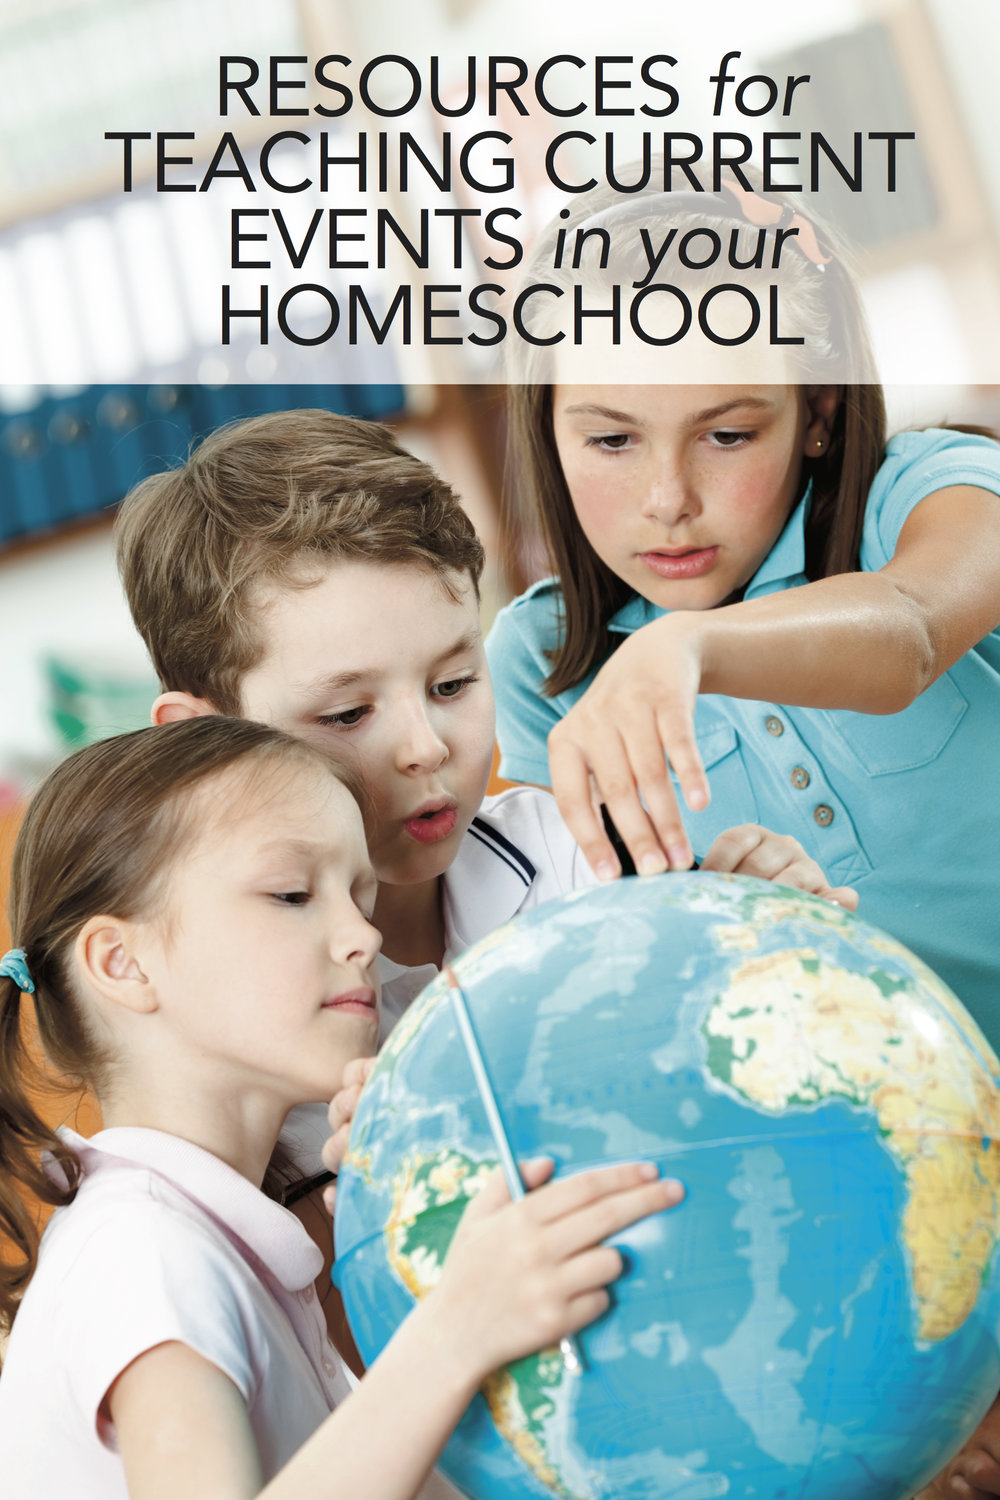 Great resources for teaching current events in your homeschool.